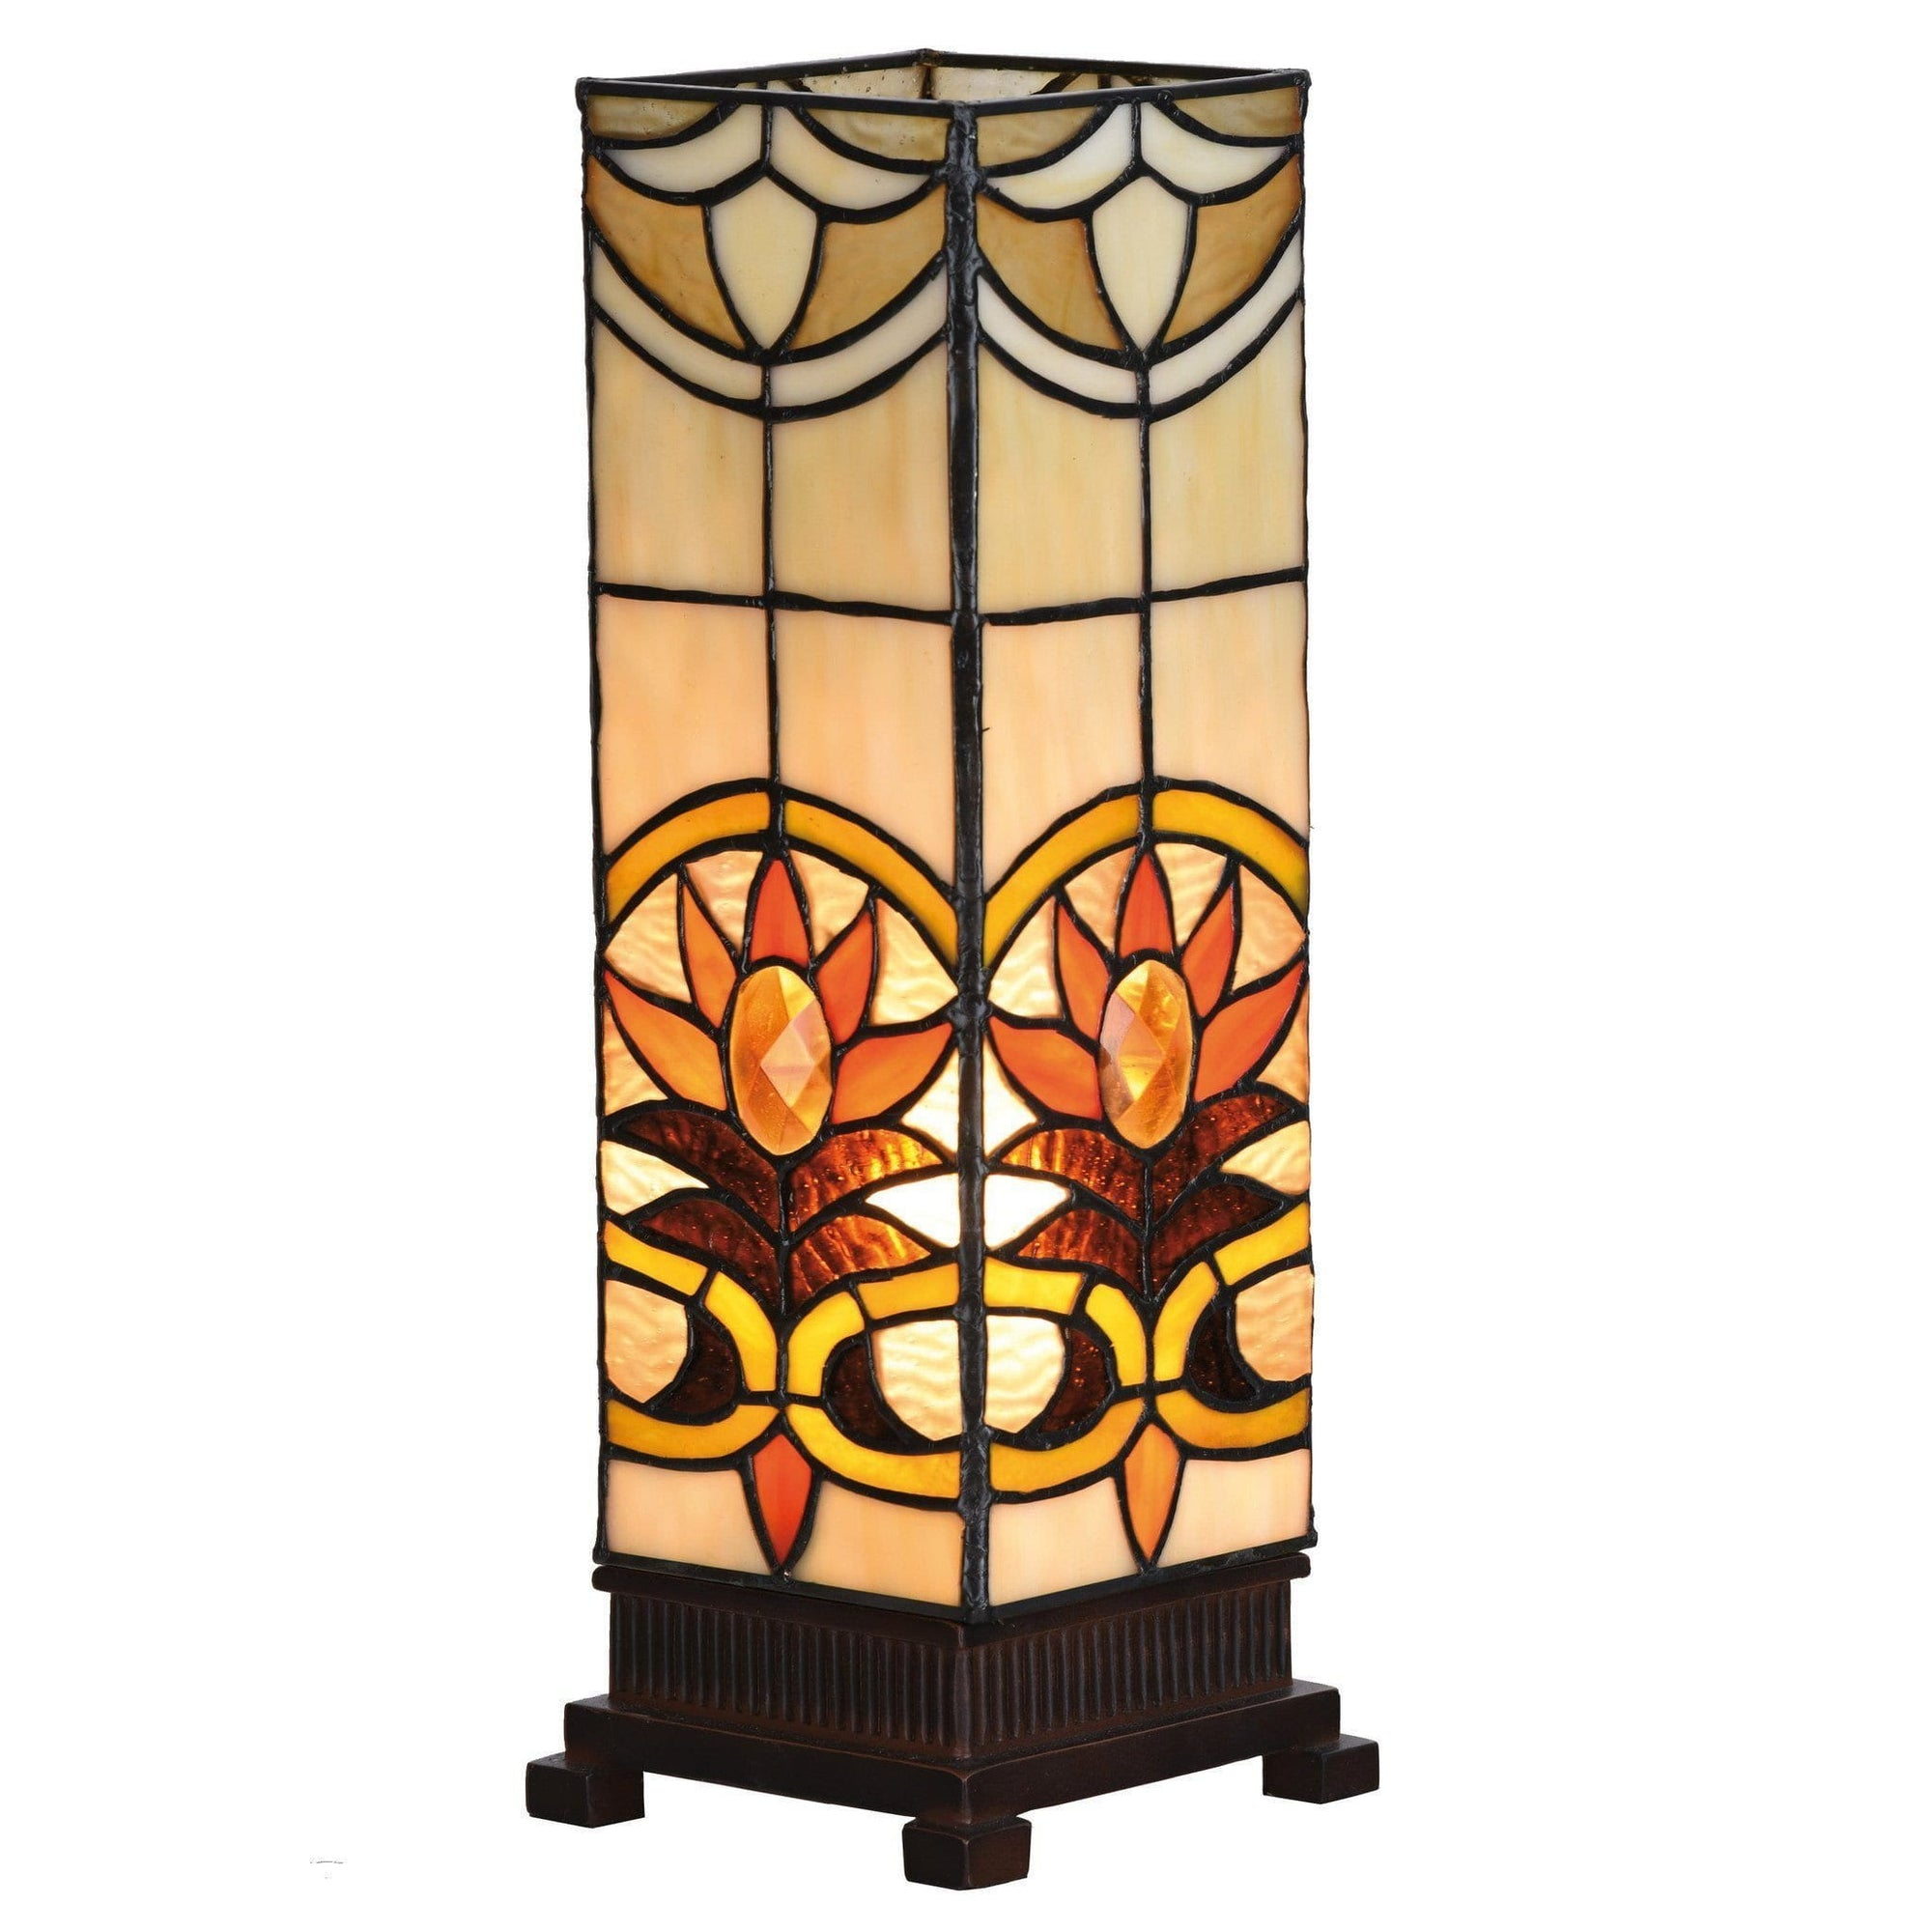 Tiffany Square Table Lamps - Aintree Medium Square Tiffany Lamp